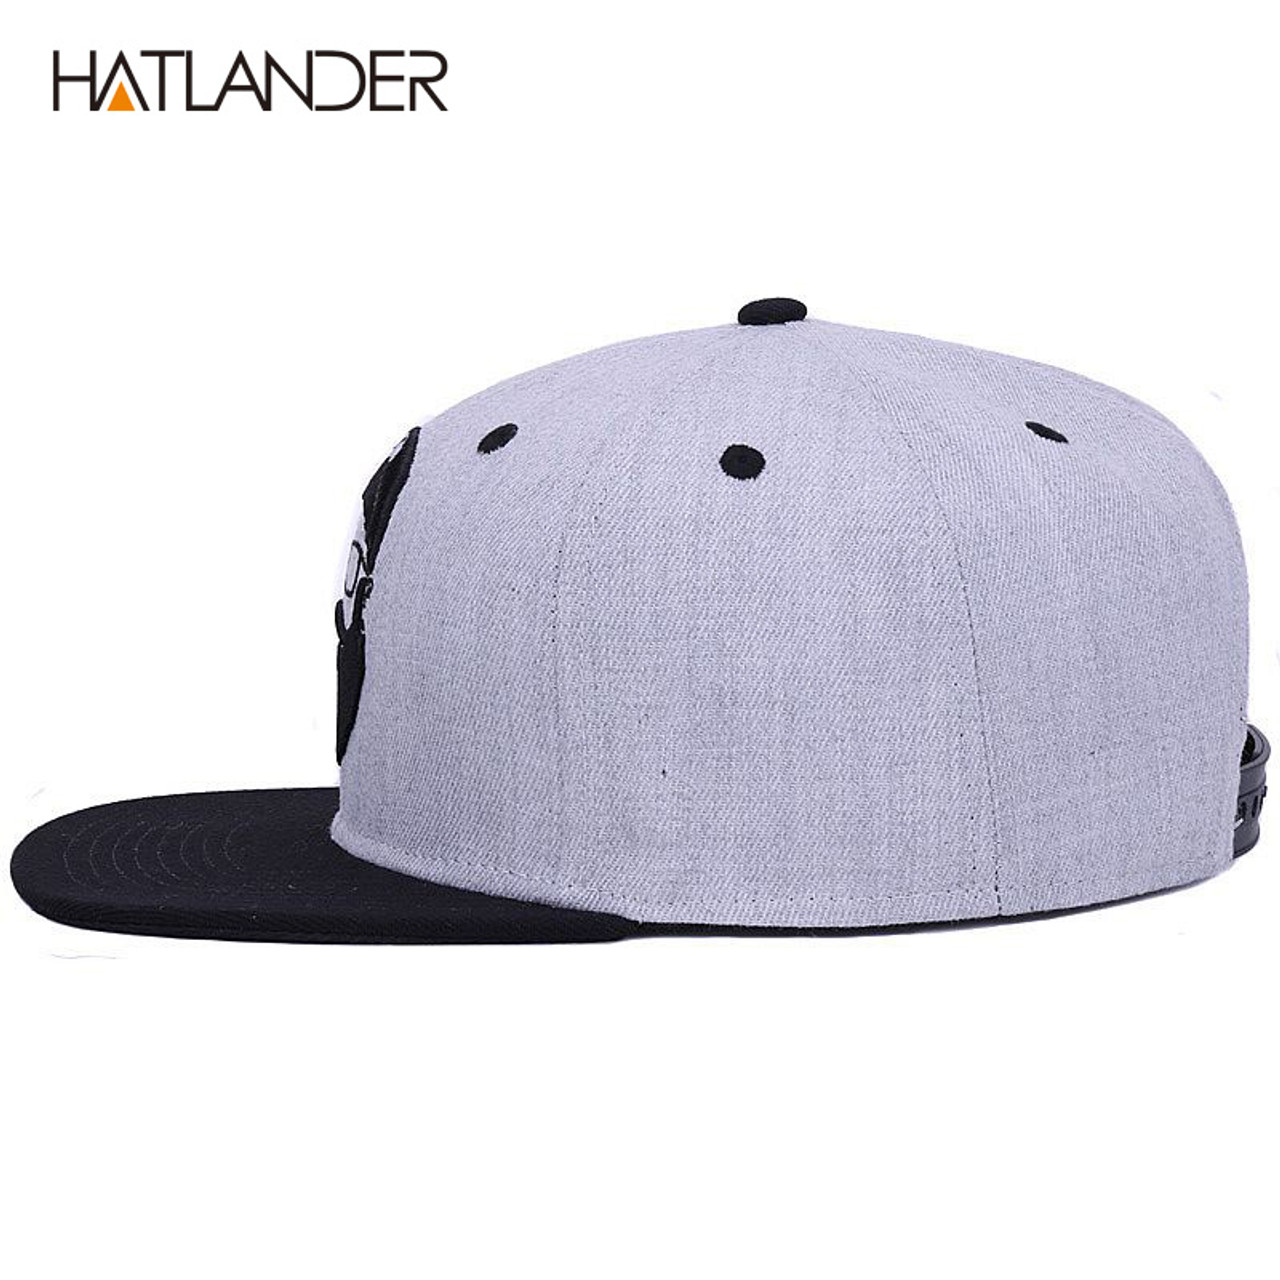 c67deb76ed895 ...  HATLANDER Original grey cool hip hop cap men women hats vintage  embroidery character baseball ...